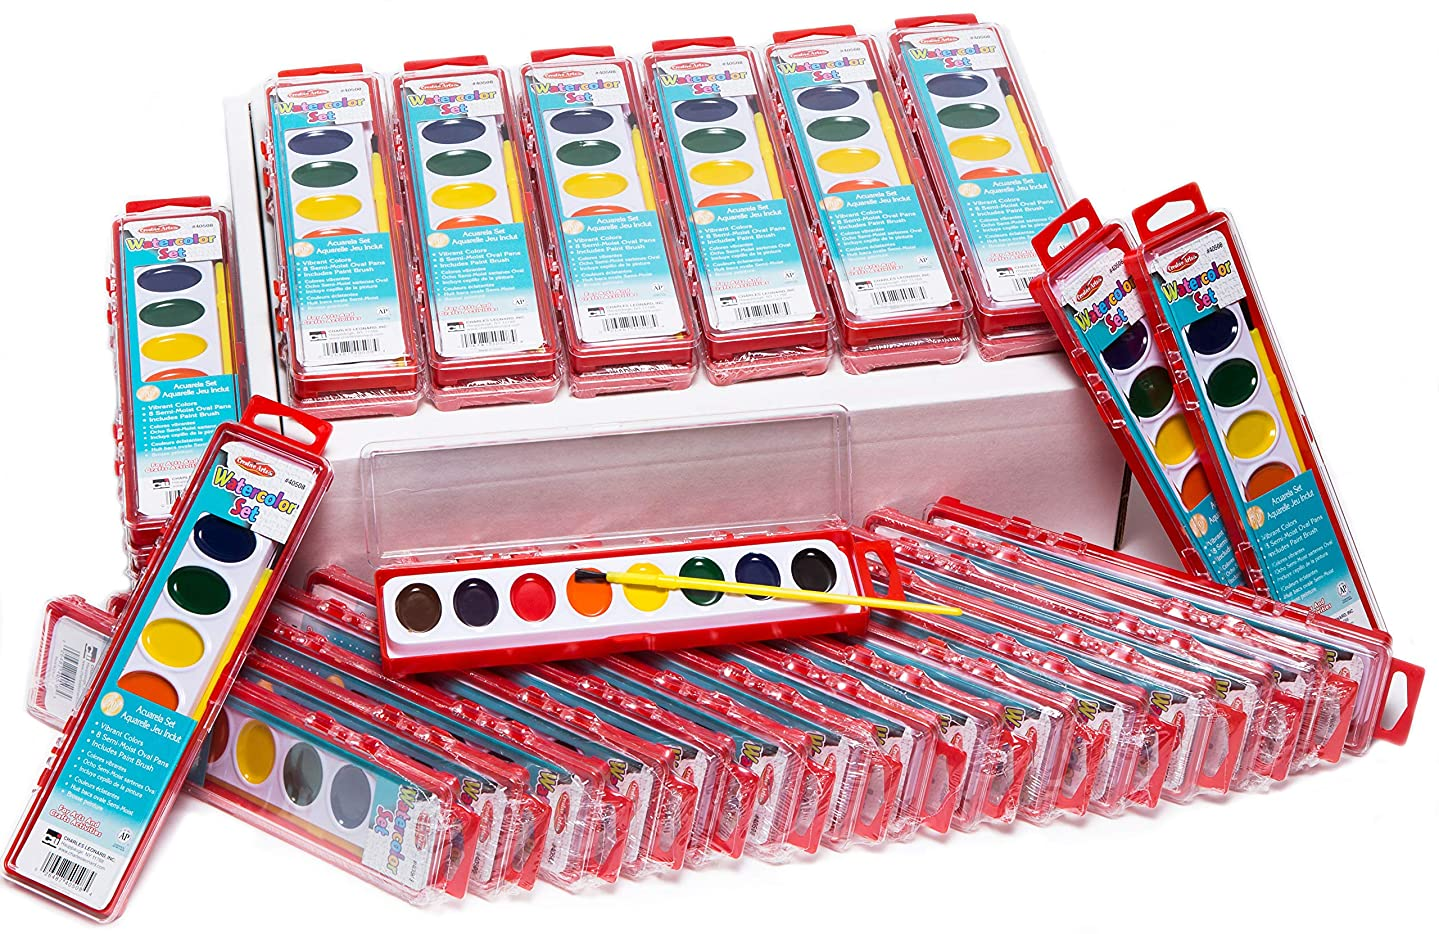 Charles Leonard Watercolor Paint Sets - 8-Color Oval Pan with Brush, Sold as a Bundle of 36 Sets (40536)